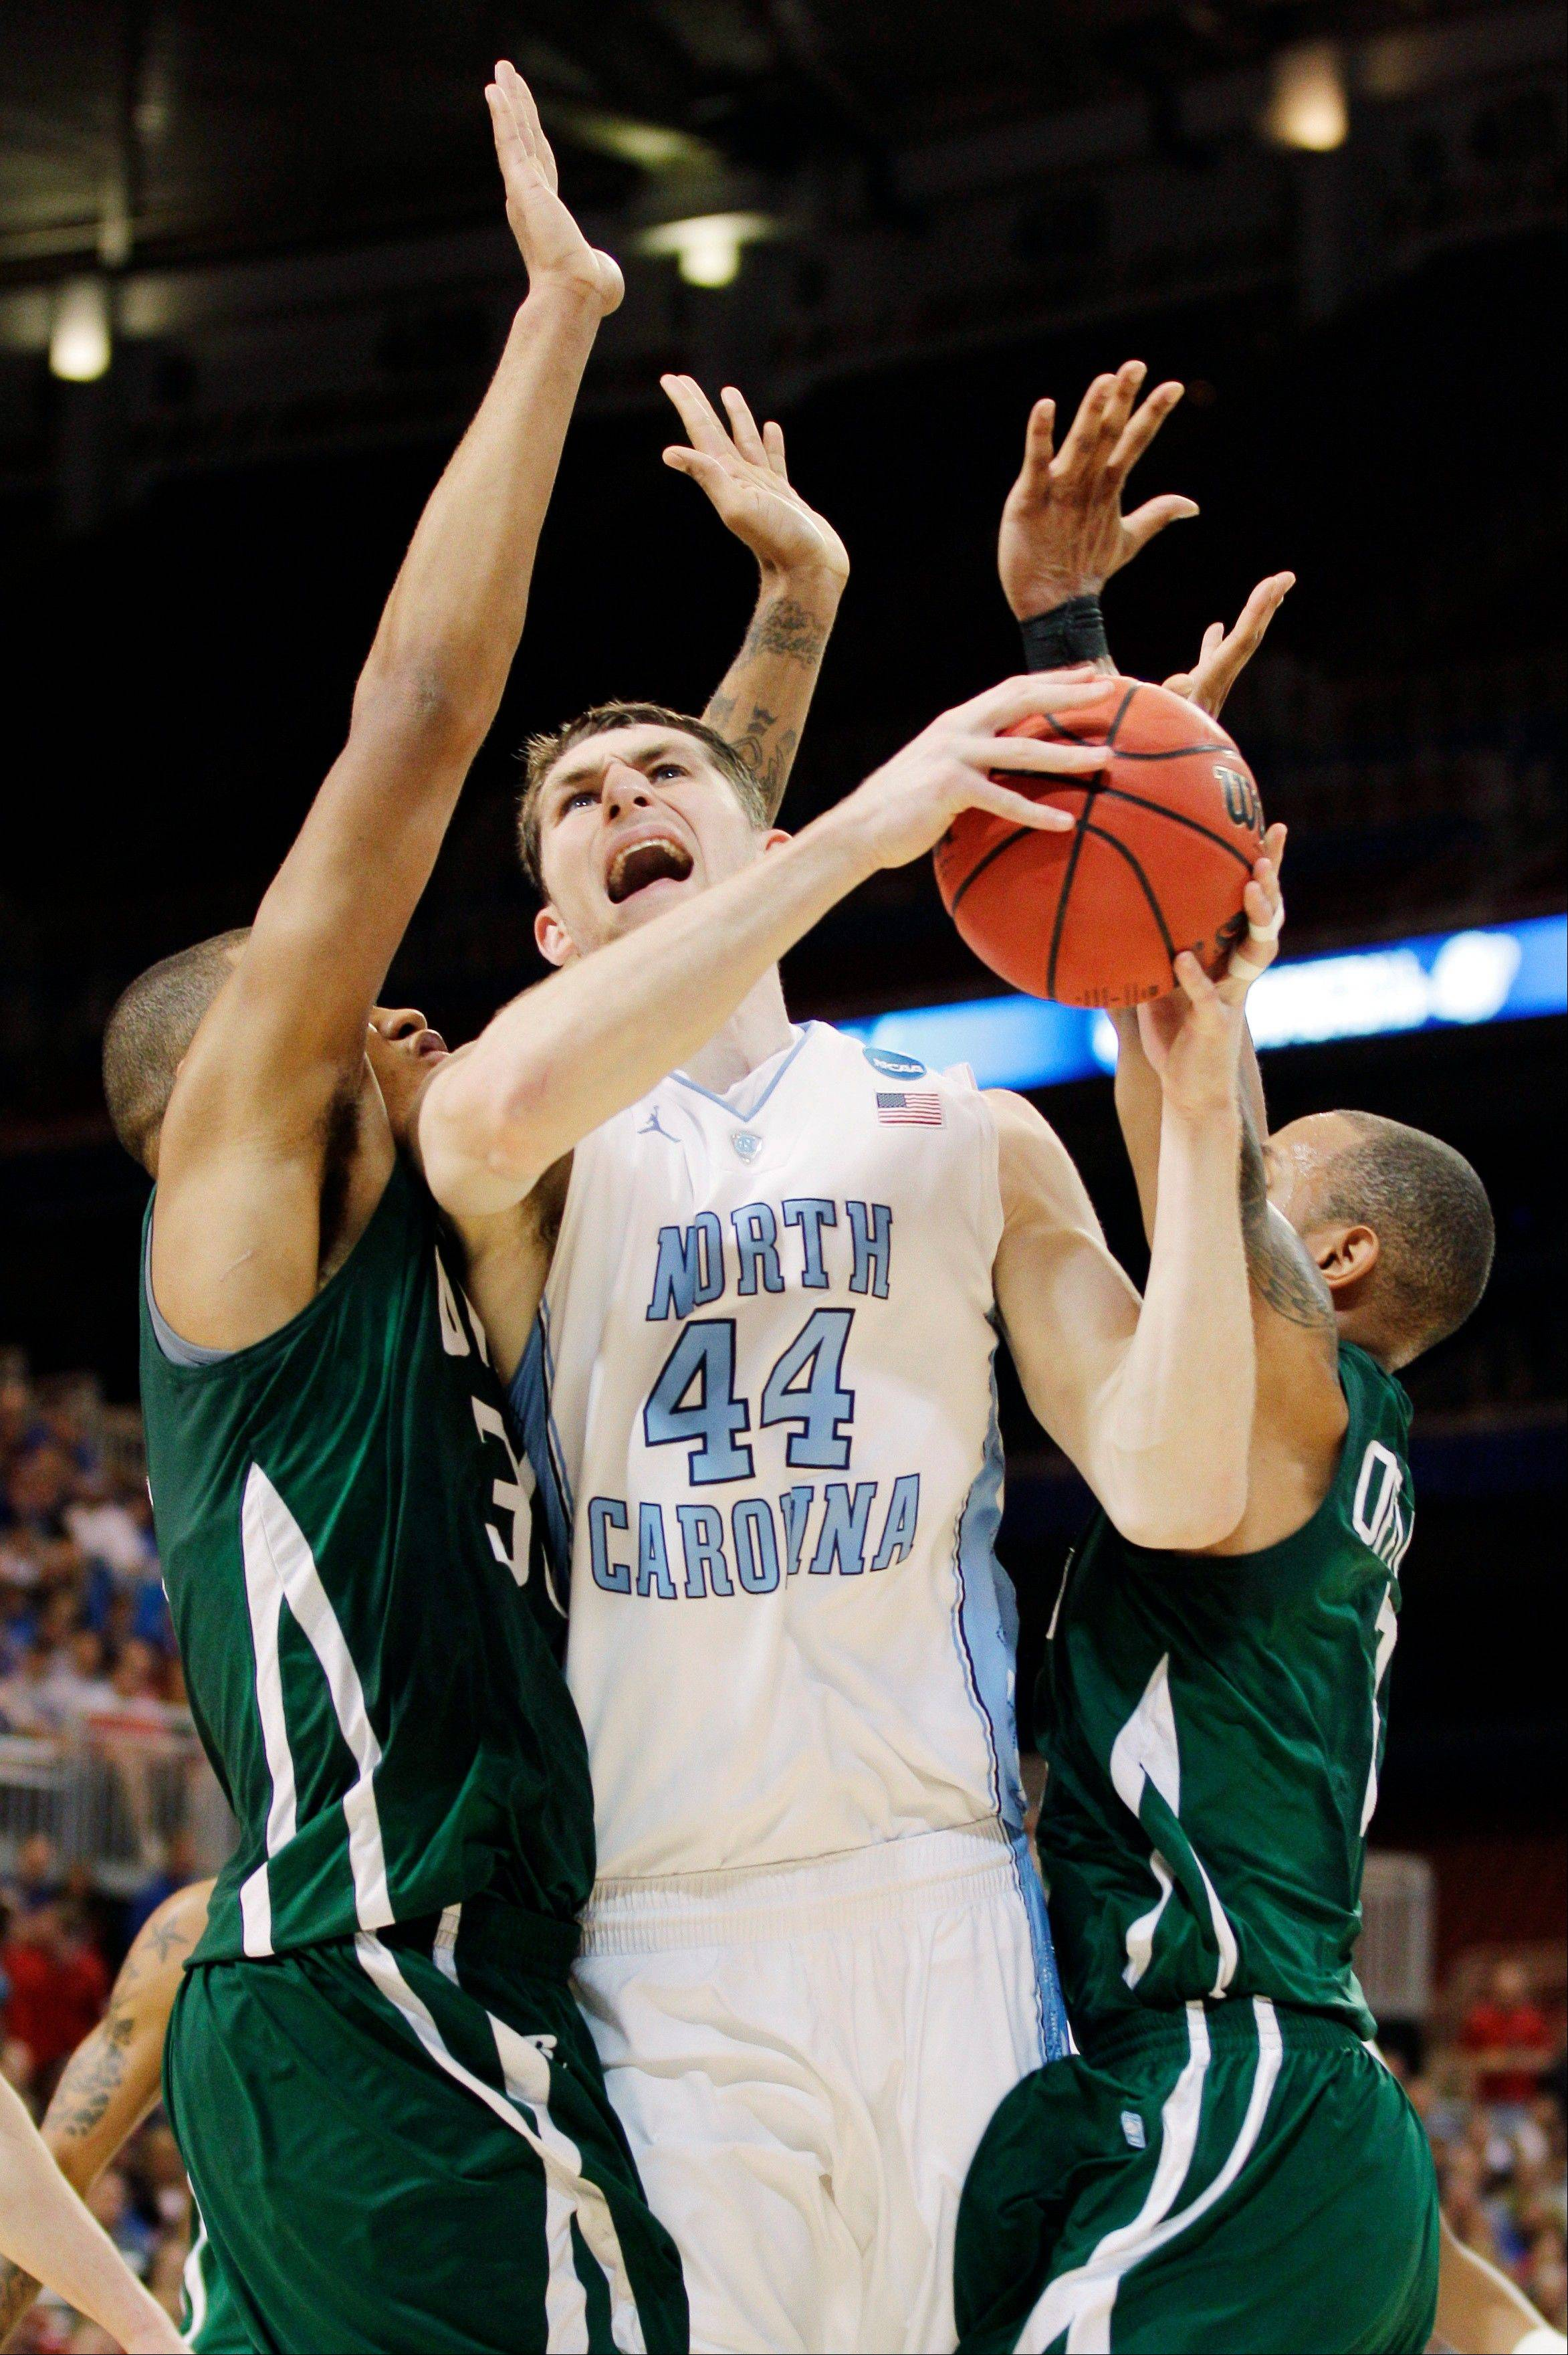 North Carolina forward Tyler Zeller goes up for a shot against Ohio forward Reggie Keely, left, and guard Walter Offutt Friday night in NCAA tournament action.